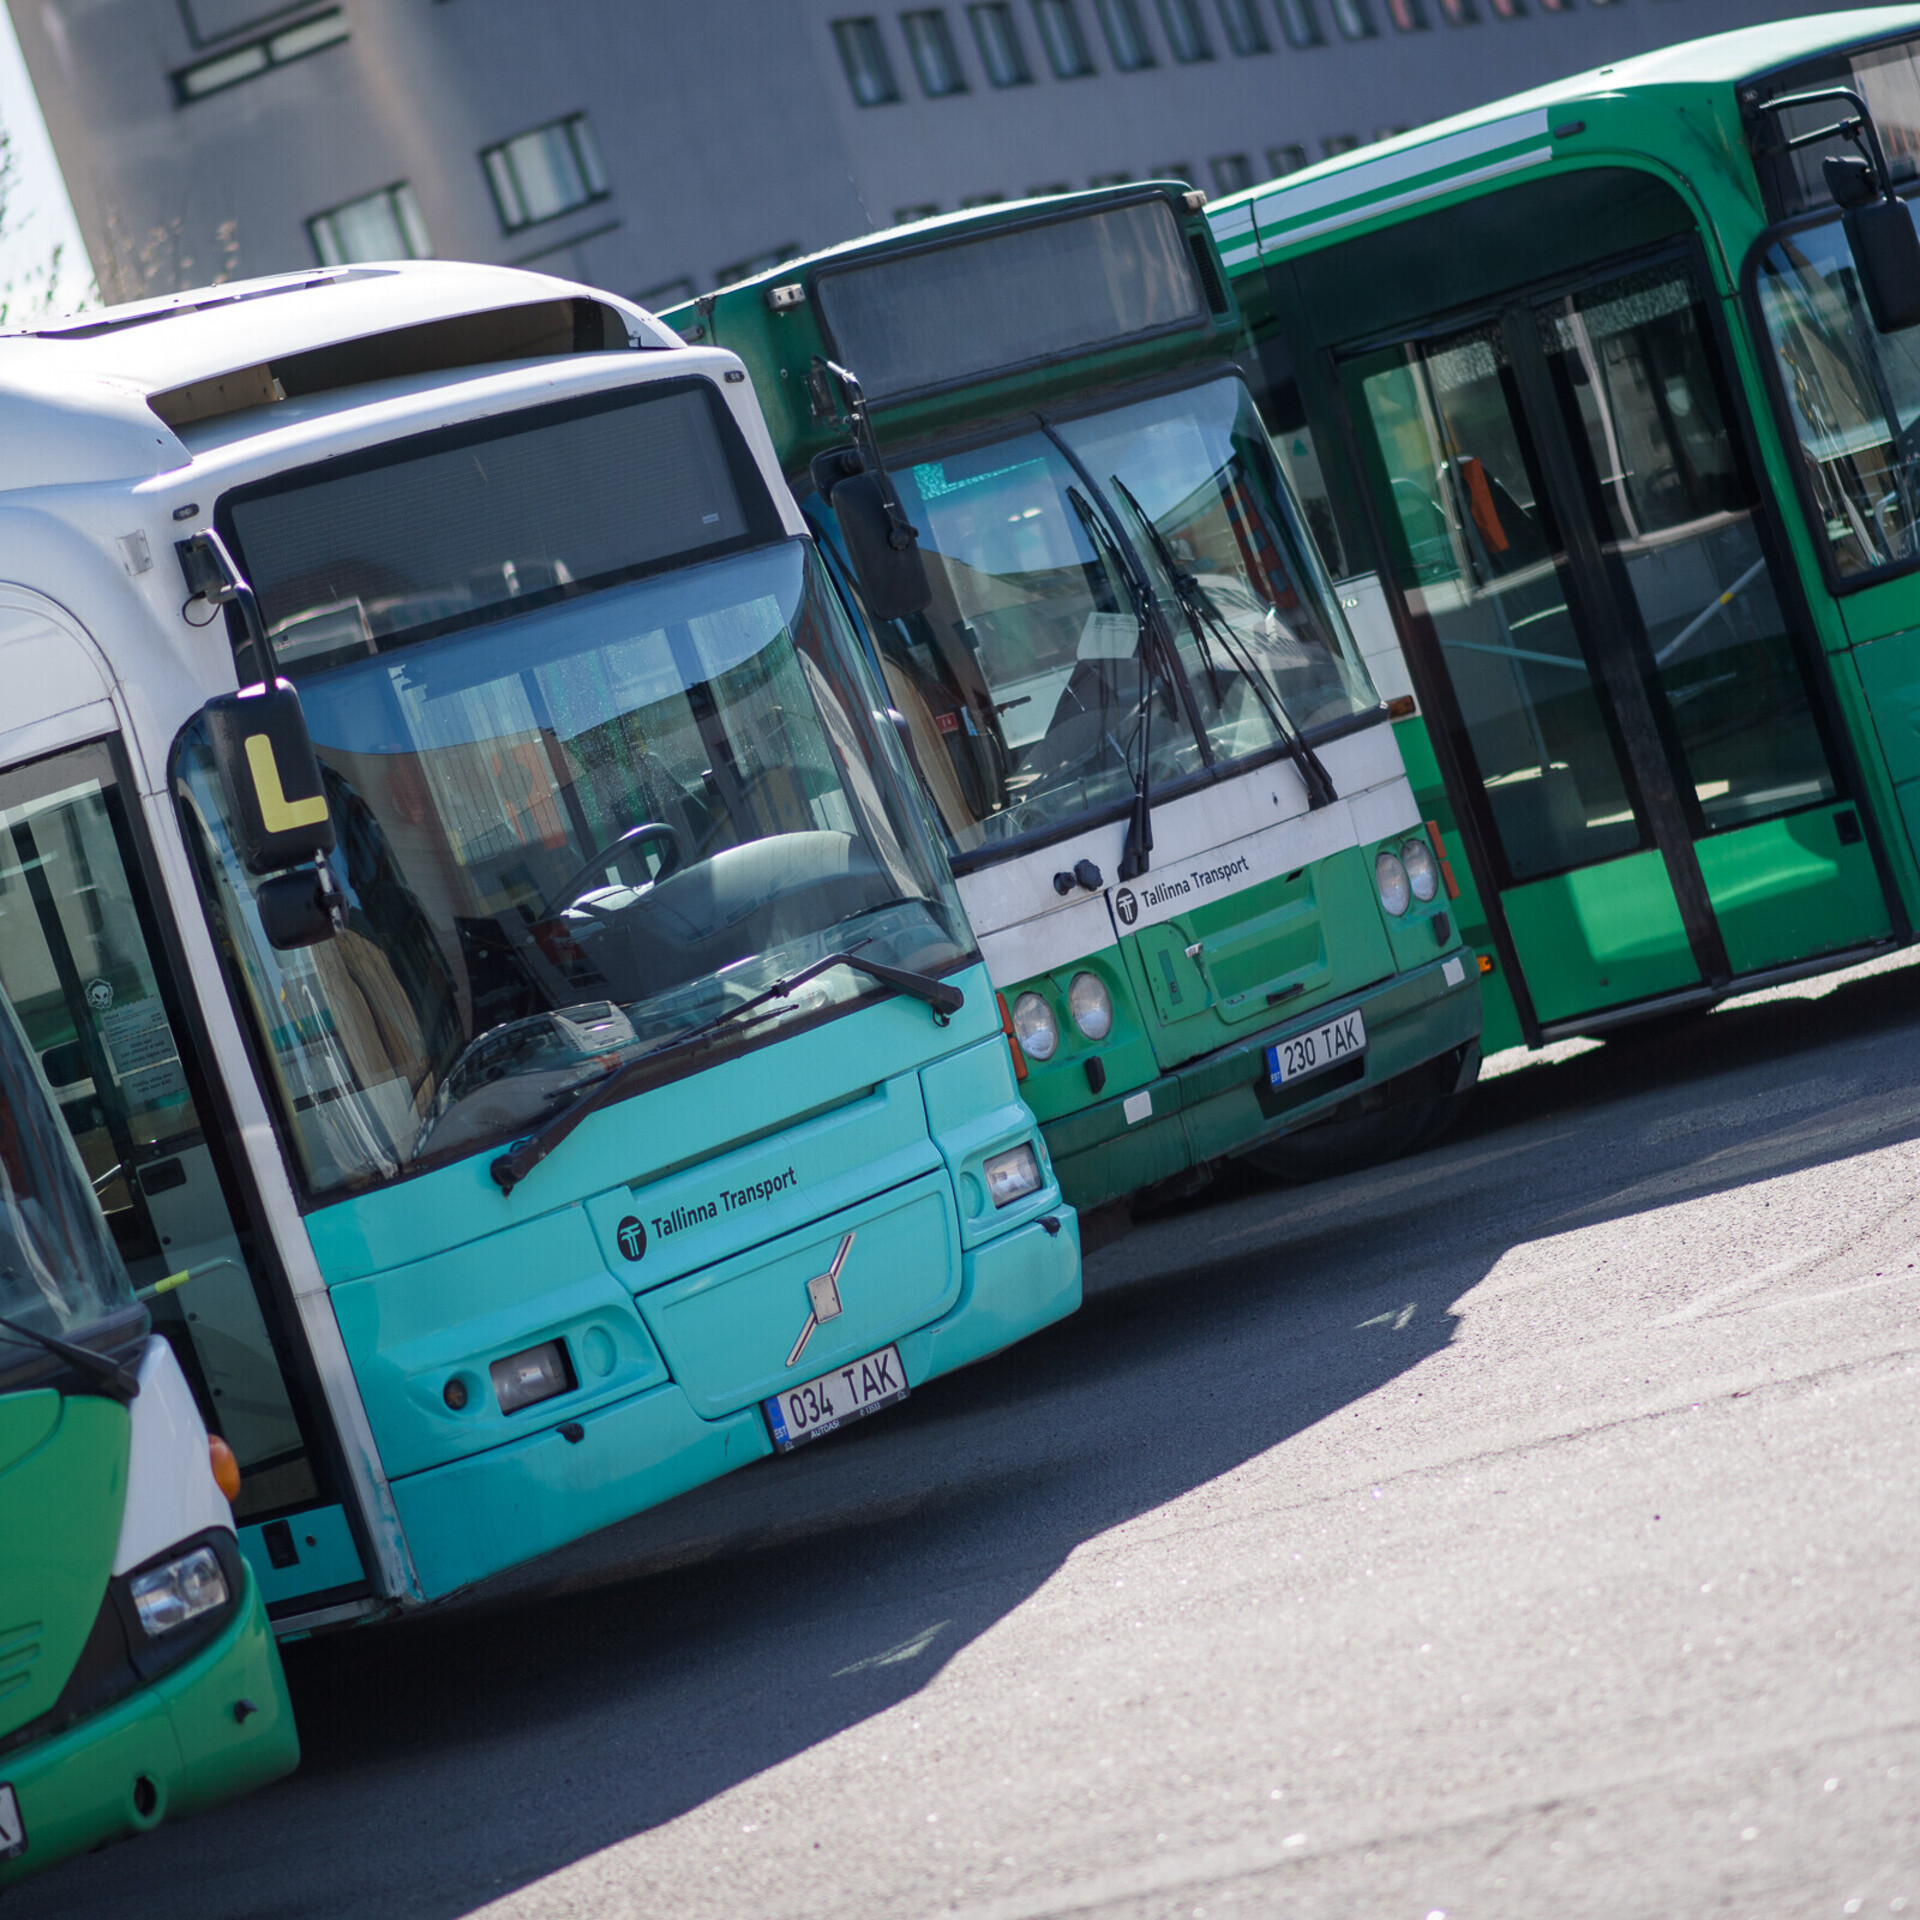 ec933268b72 Tallinn to acquire over 650 electric buses by 2035 | News | ERR